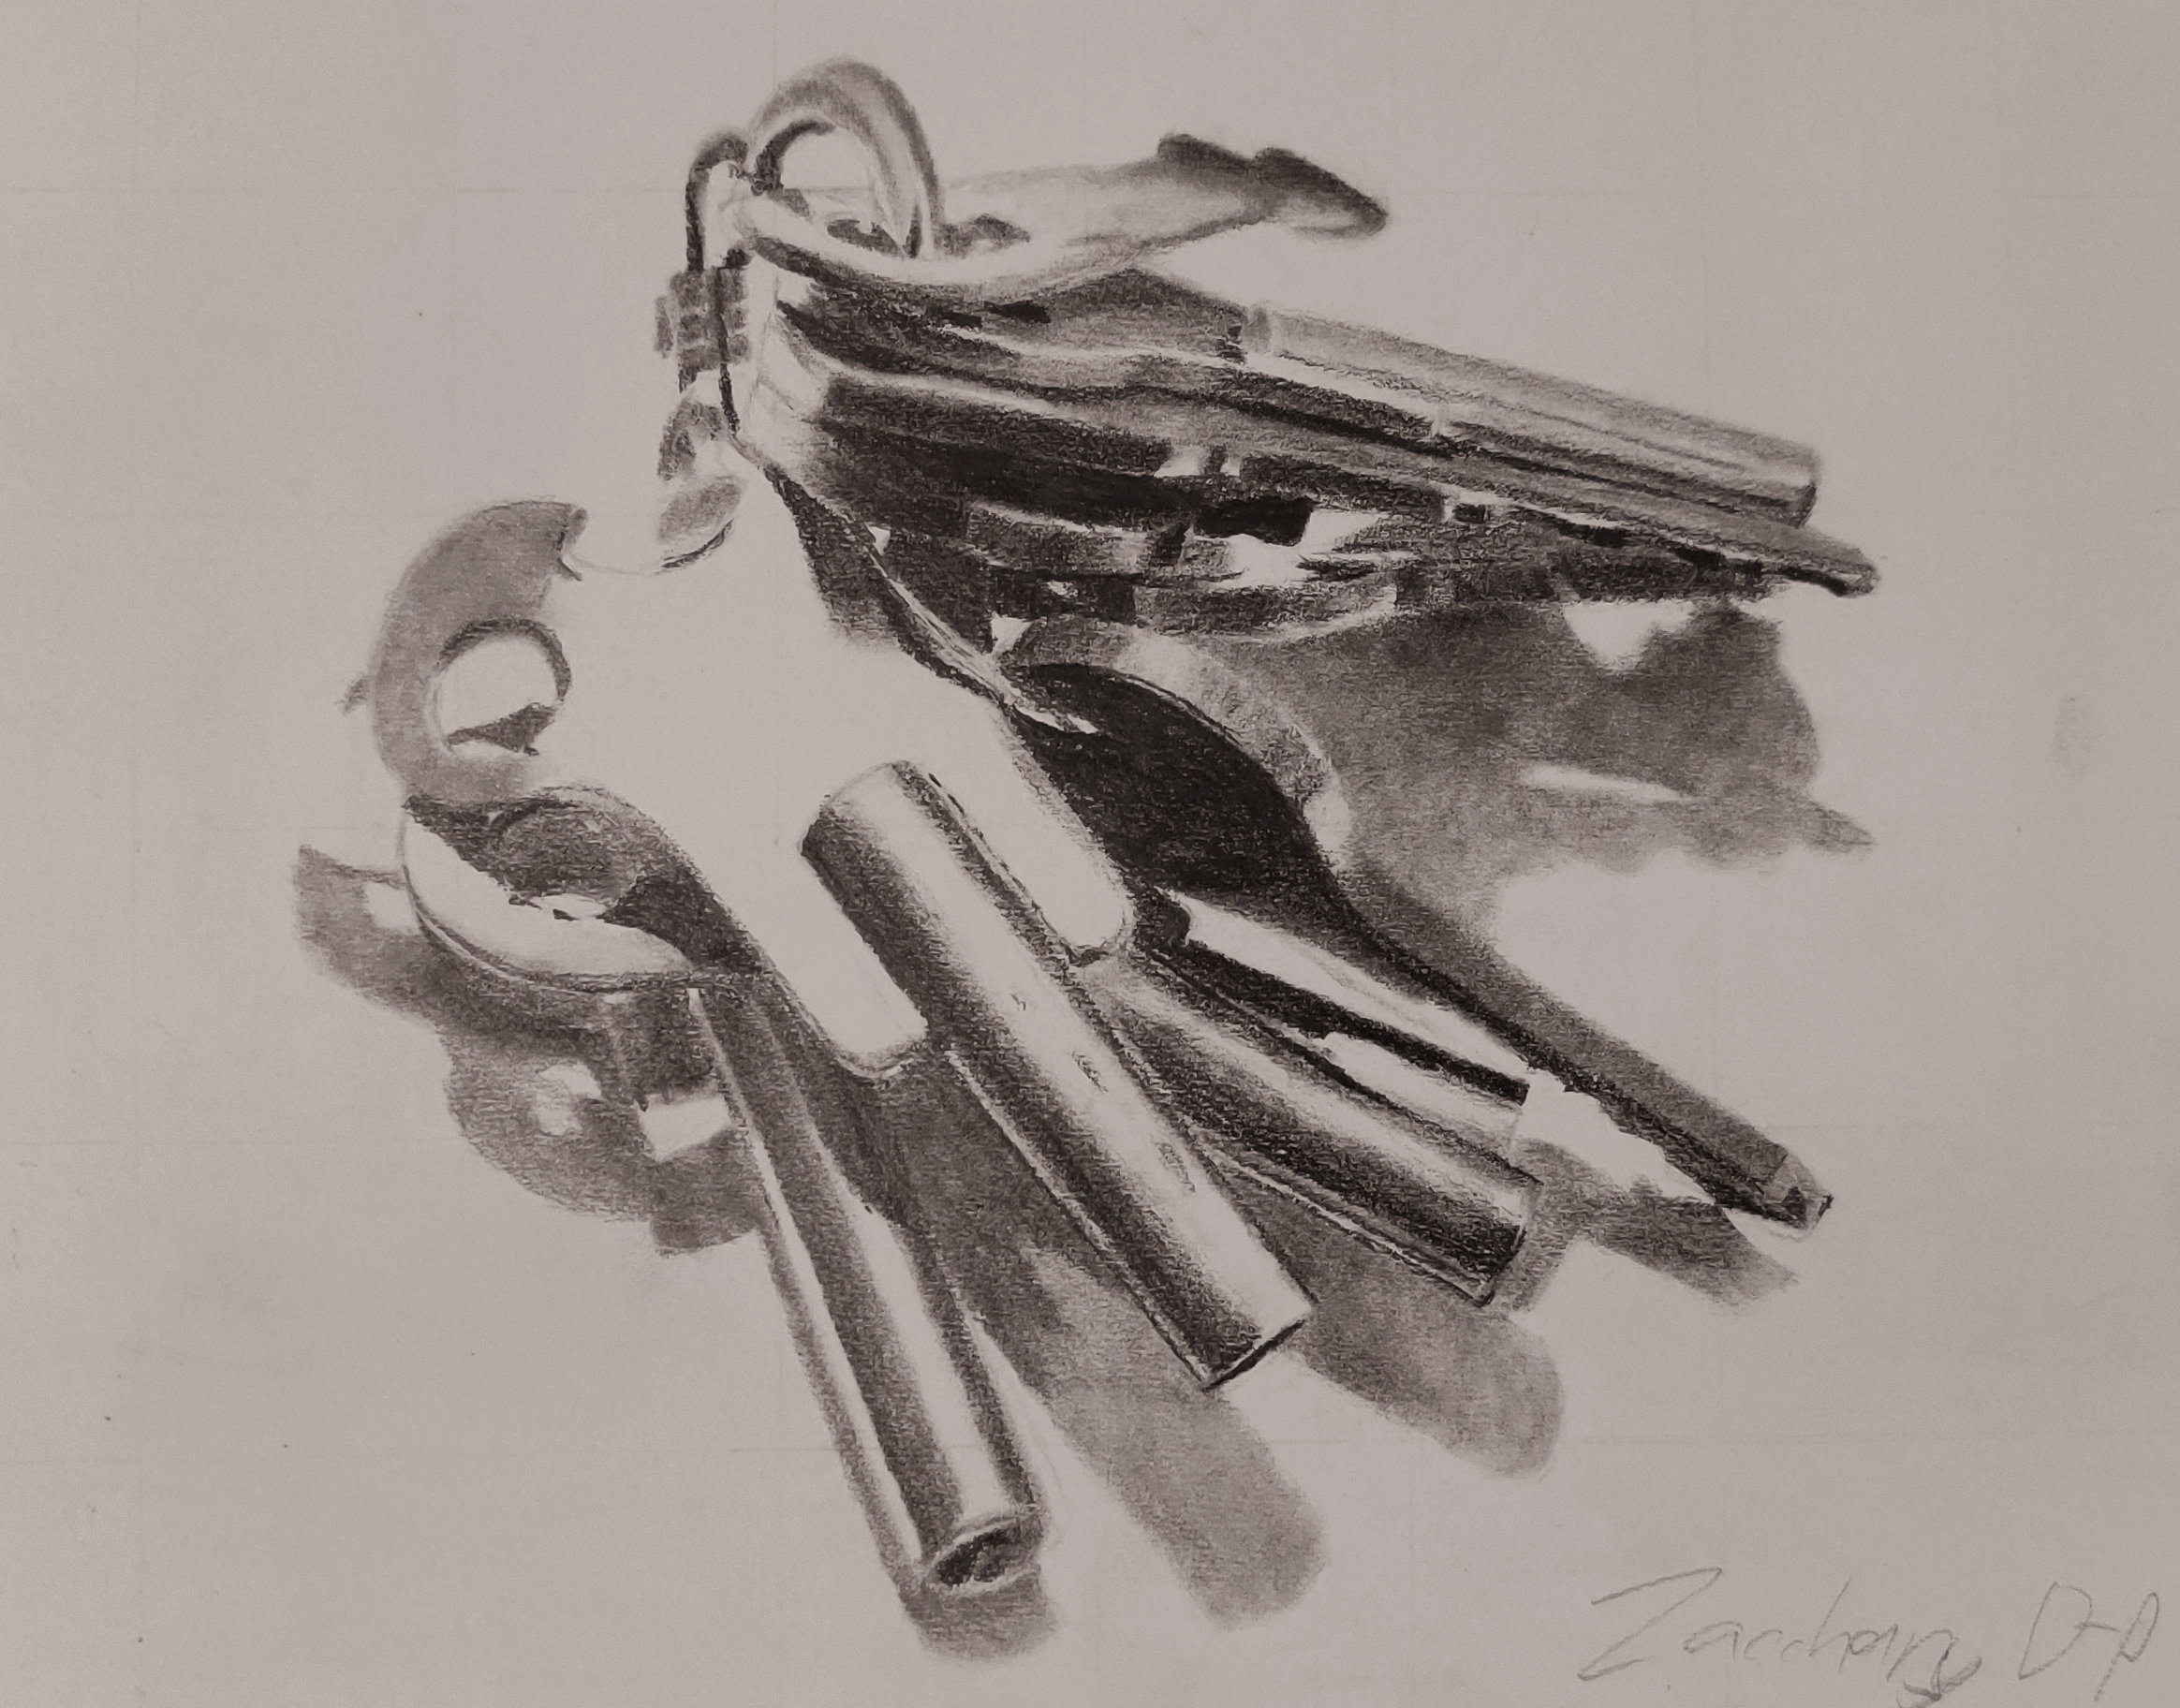 A drawing of a set of old keys resting on a windowsill.